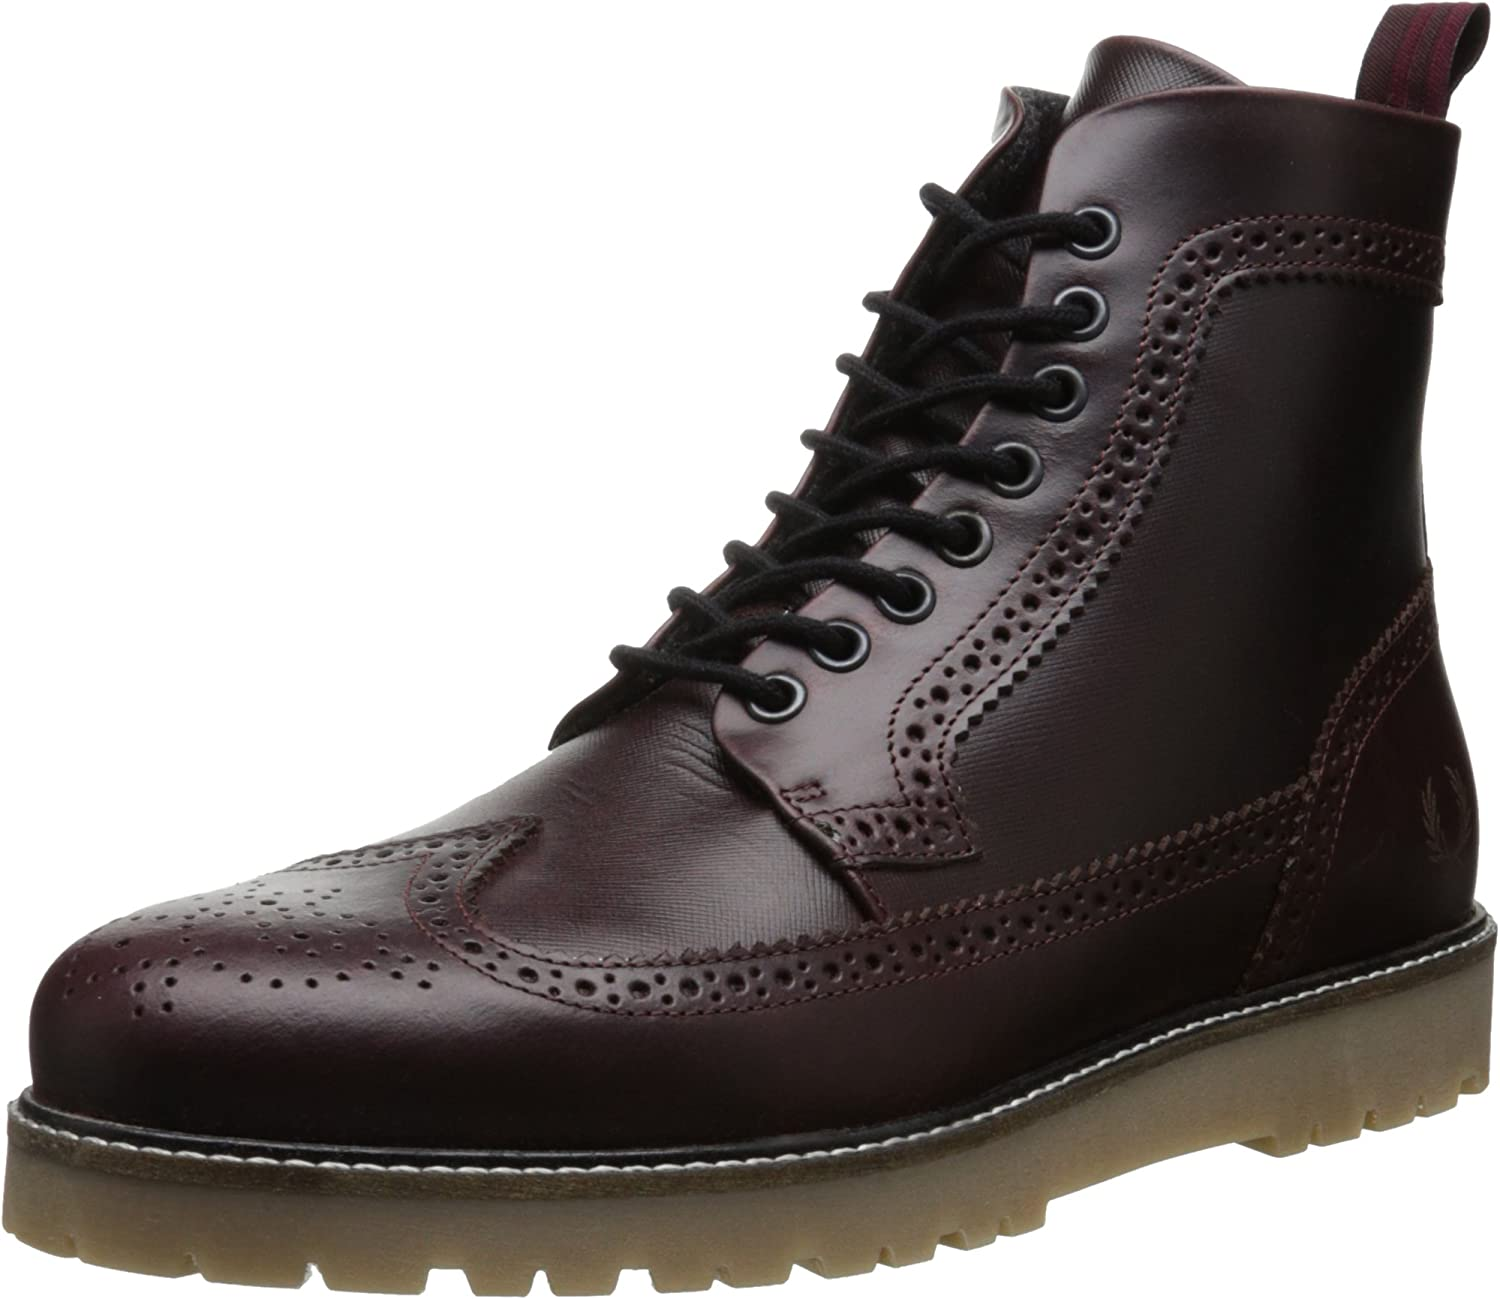 Frot Perry Northgate Stiefel Leather, ox Blood. EU 41 (UK7)